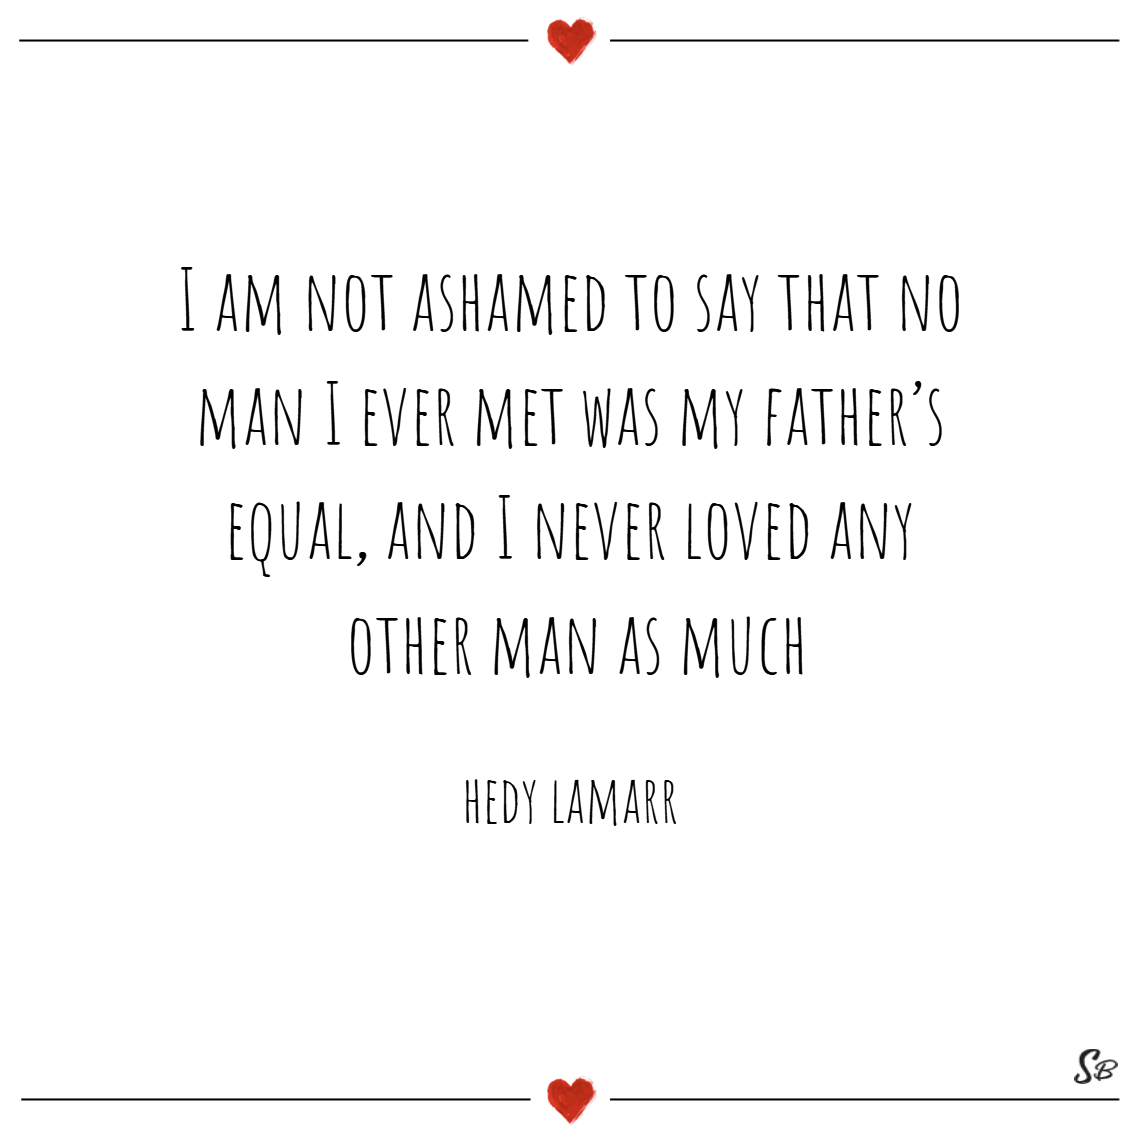 I am not ashamed to say that no man i ever met was my father's equal, and i never loved any other man as much. – hedy lamarr father daughter quotes